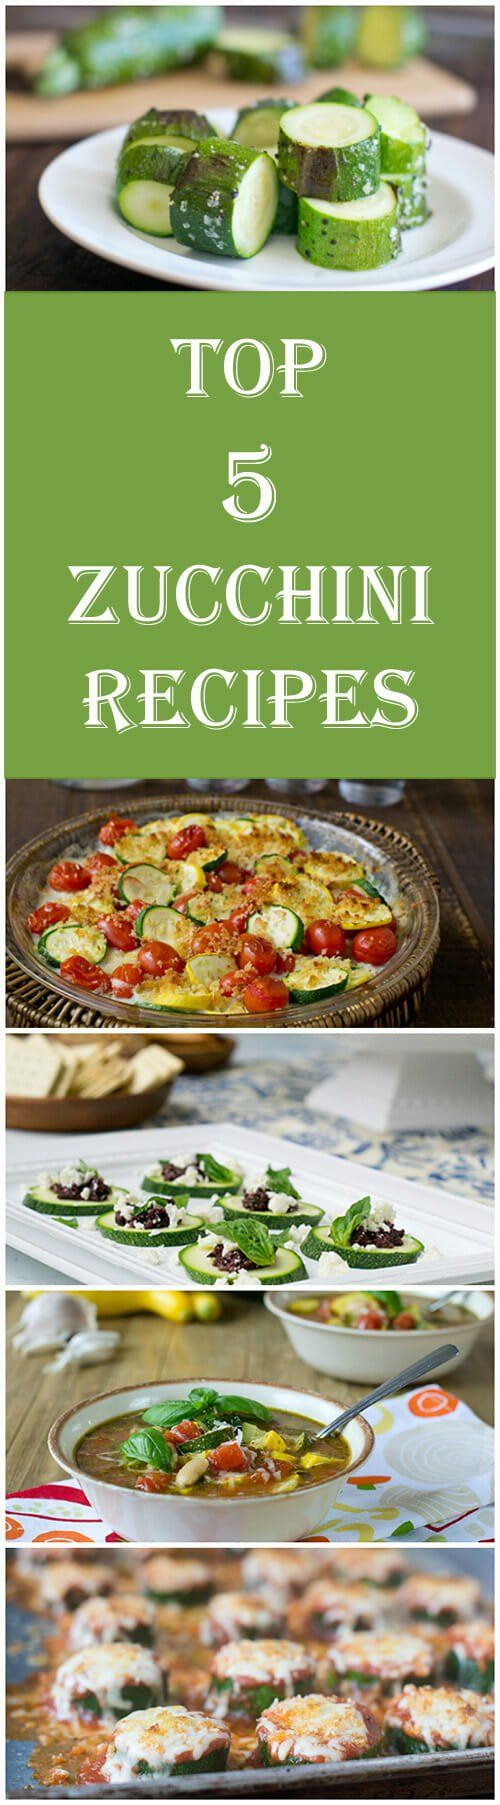 The 5 best zucchini recipes ever: Zucchini Parmesan, Zucchini Gratin, Summer Minestrone with Zucchini, Grilled Whole Zucchini and Zucchini Feta Bites.  #top5zucchinirecipes #healthyrecipes #veggierecipes #cookthestory